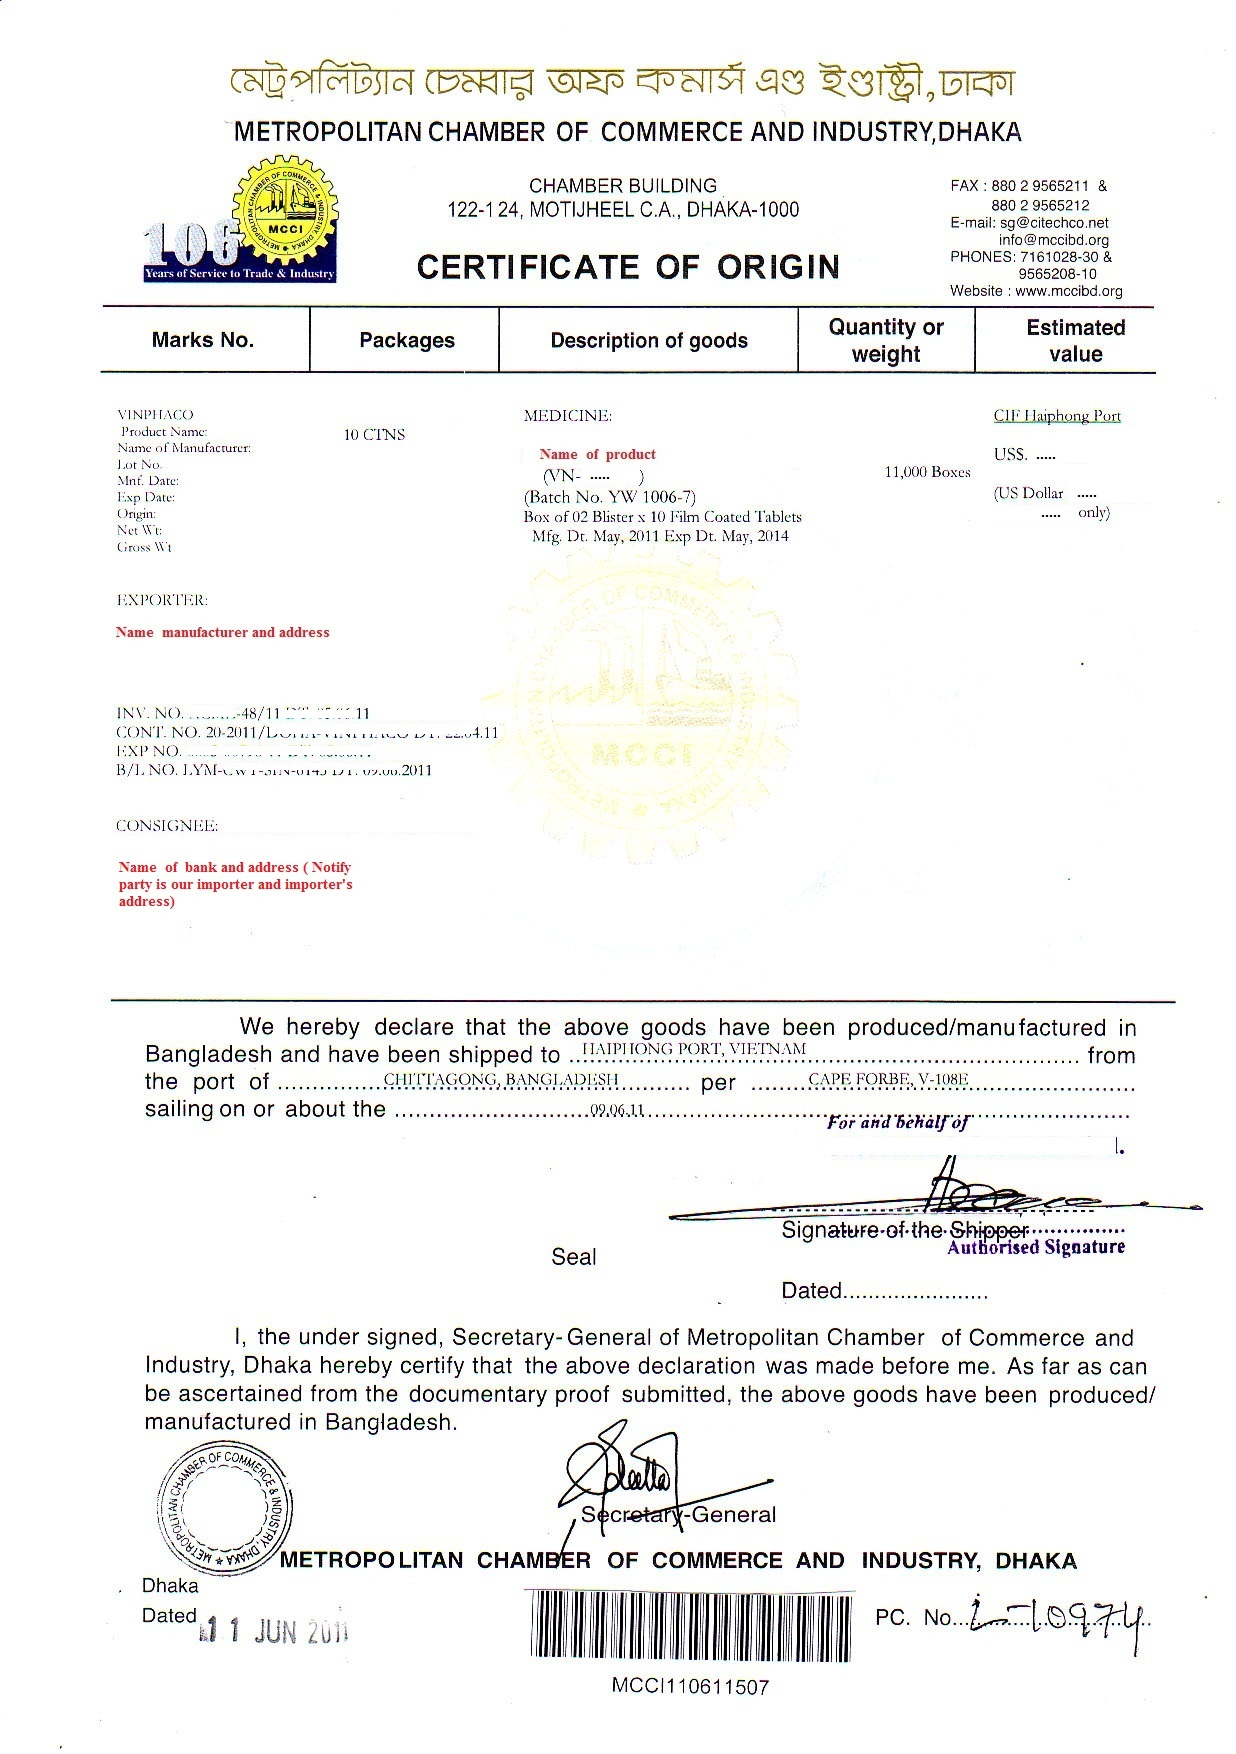 sample certificate of origin – Sample Certificate of Origin